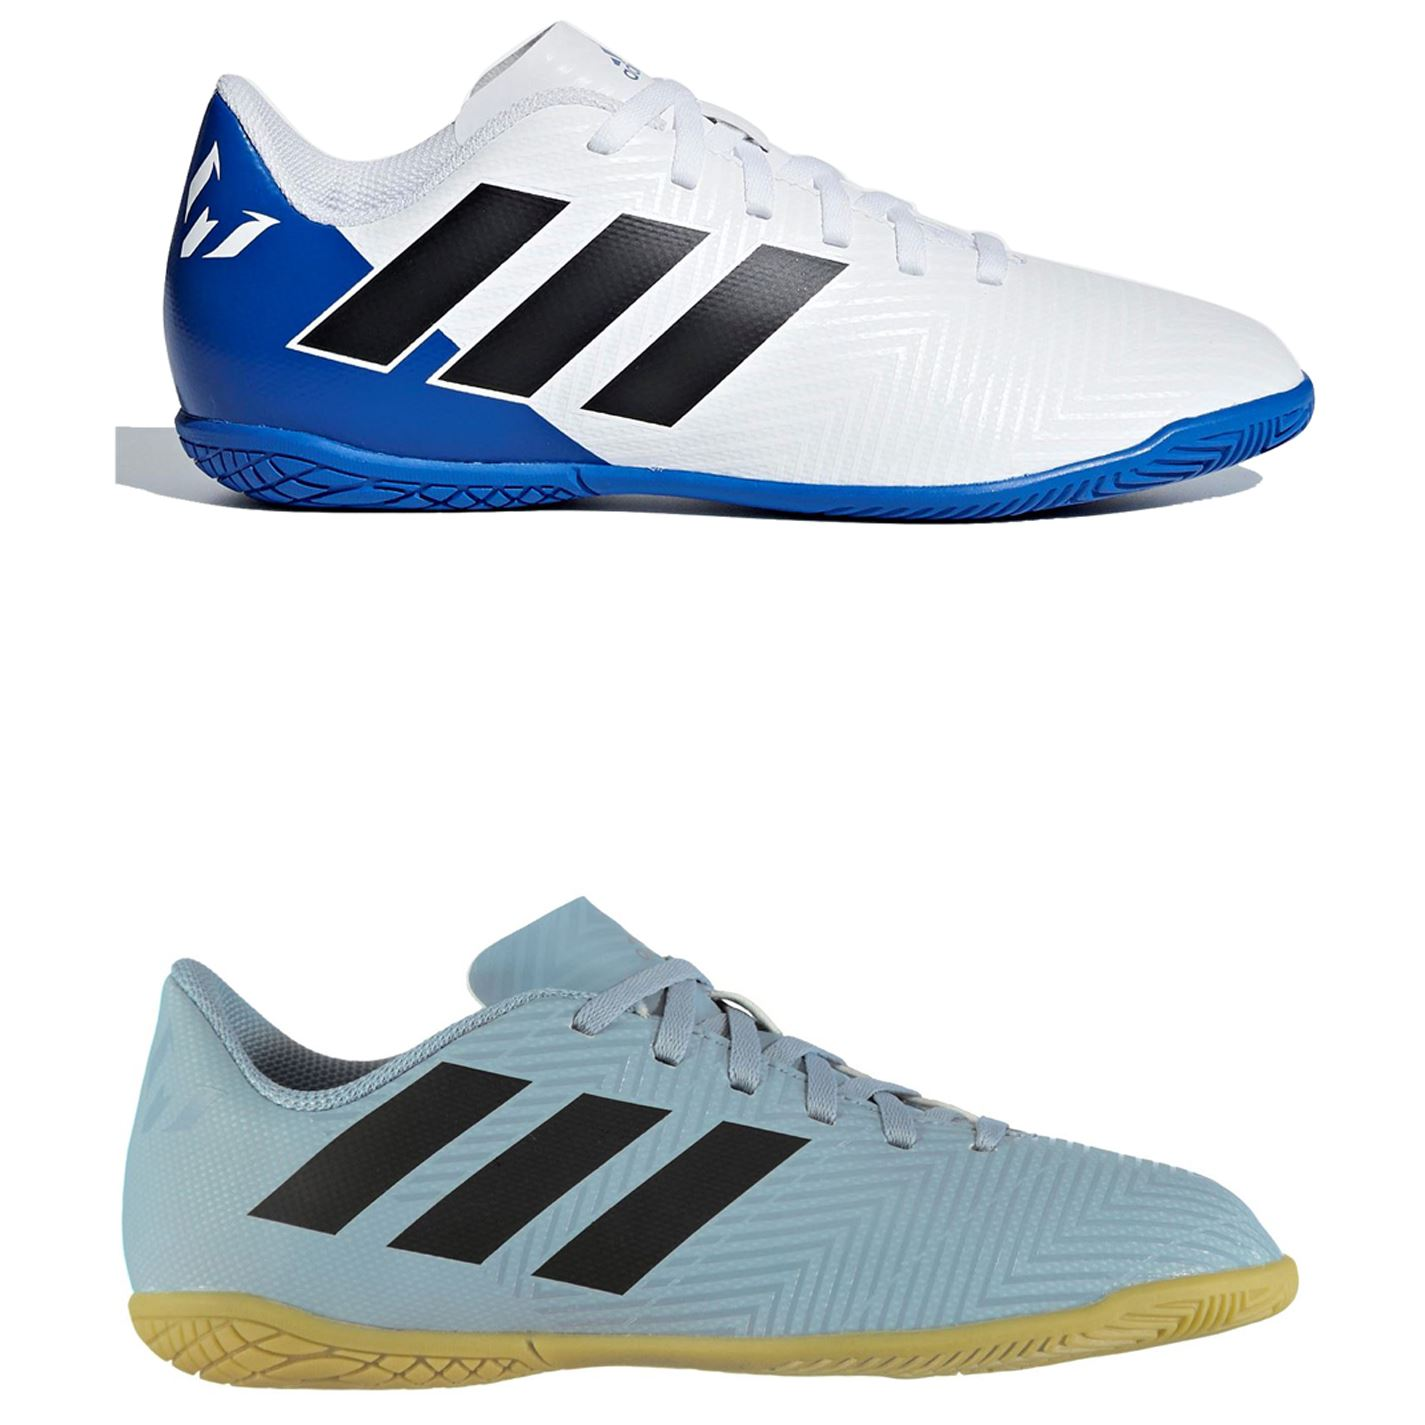 Details about adidas Nemeziz Messi Tango 18.4 Indoor Football Trainers Juniors Soccer Shoes